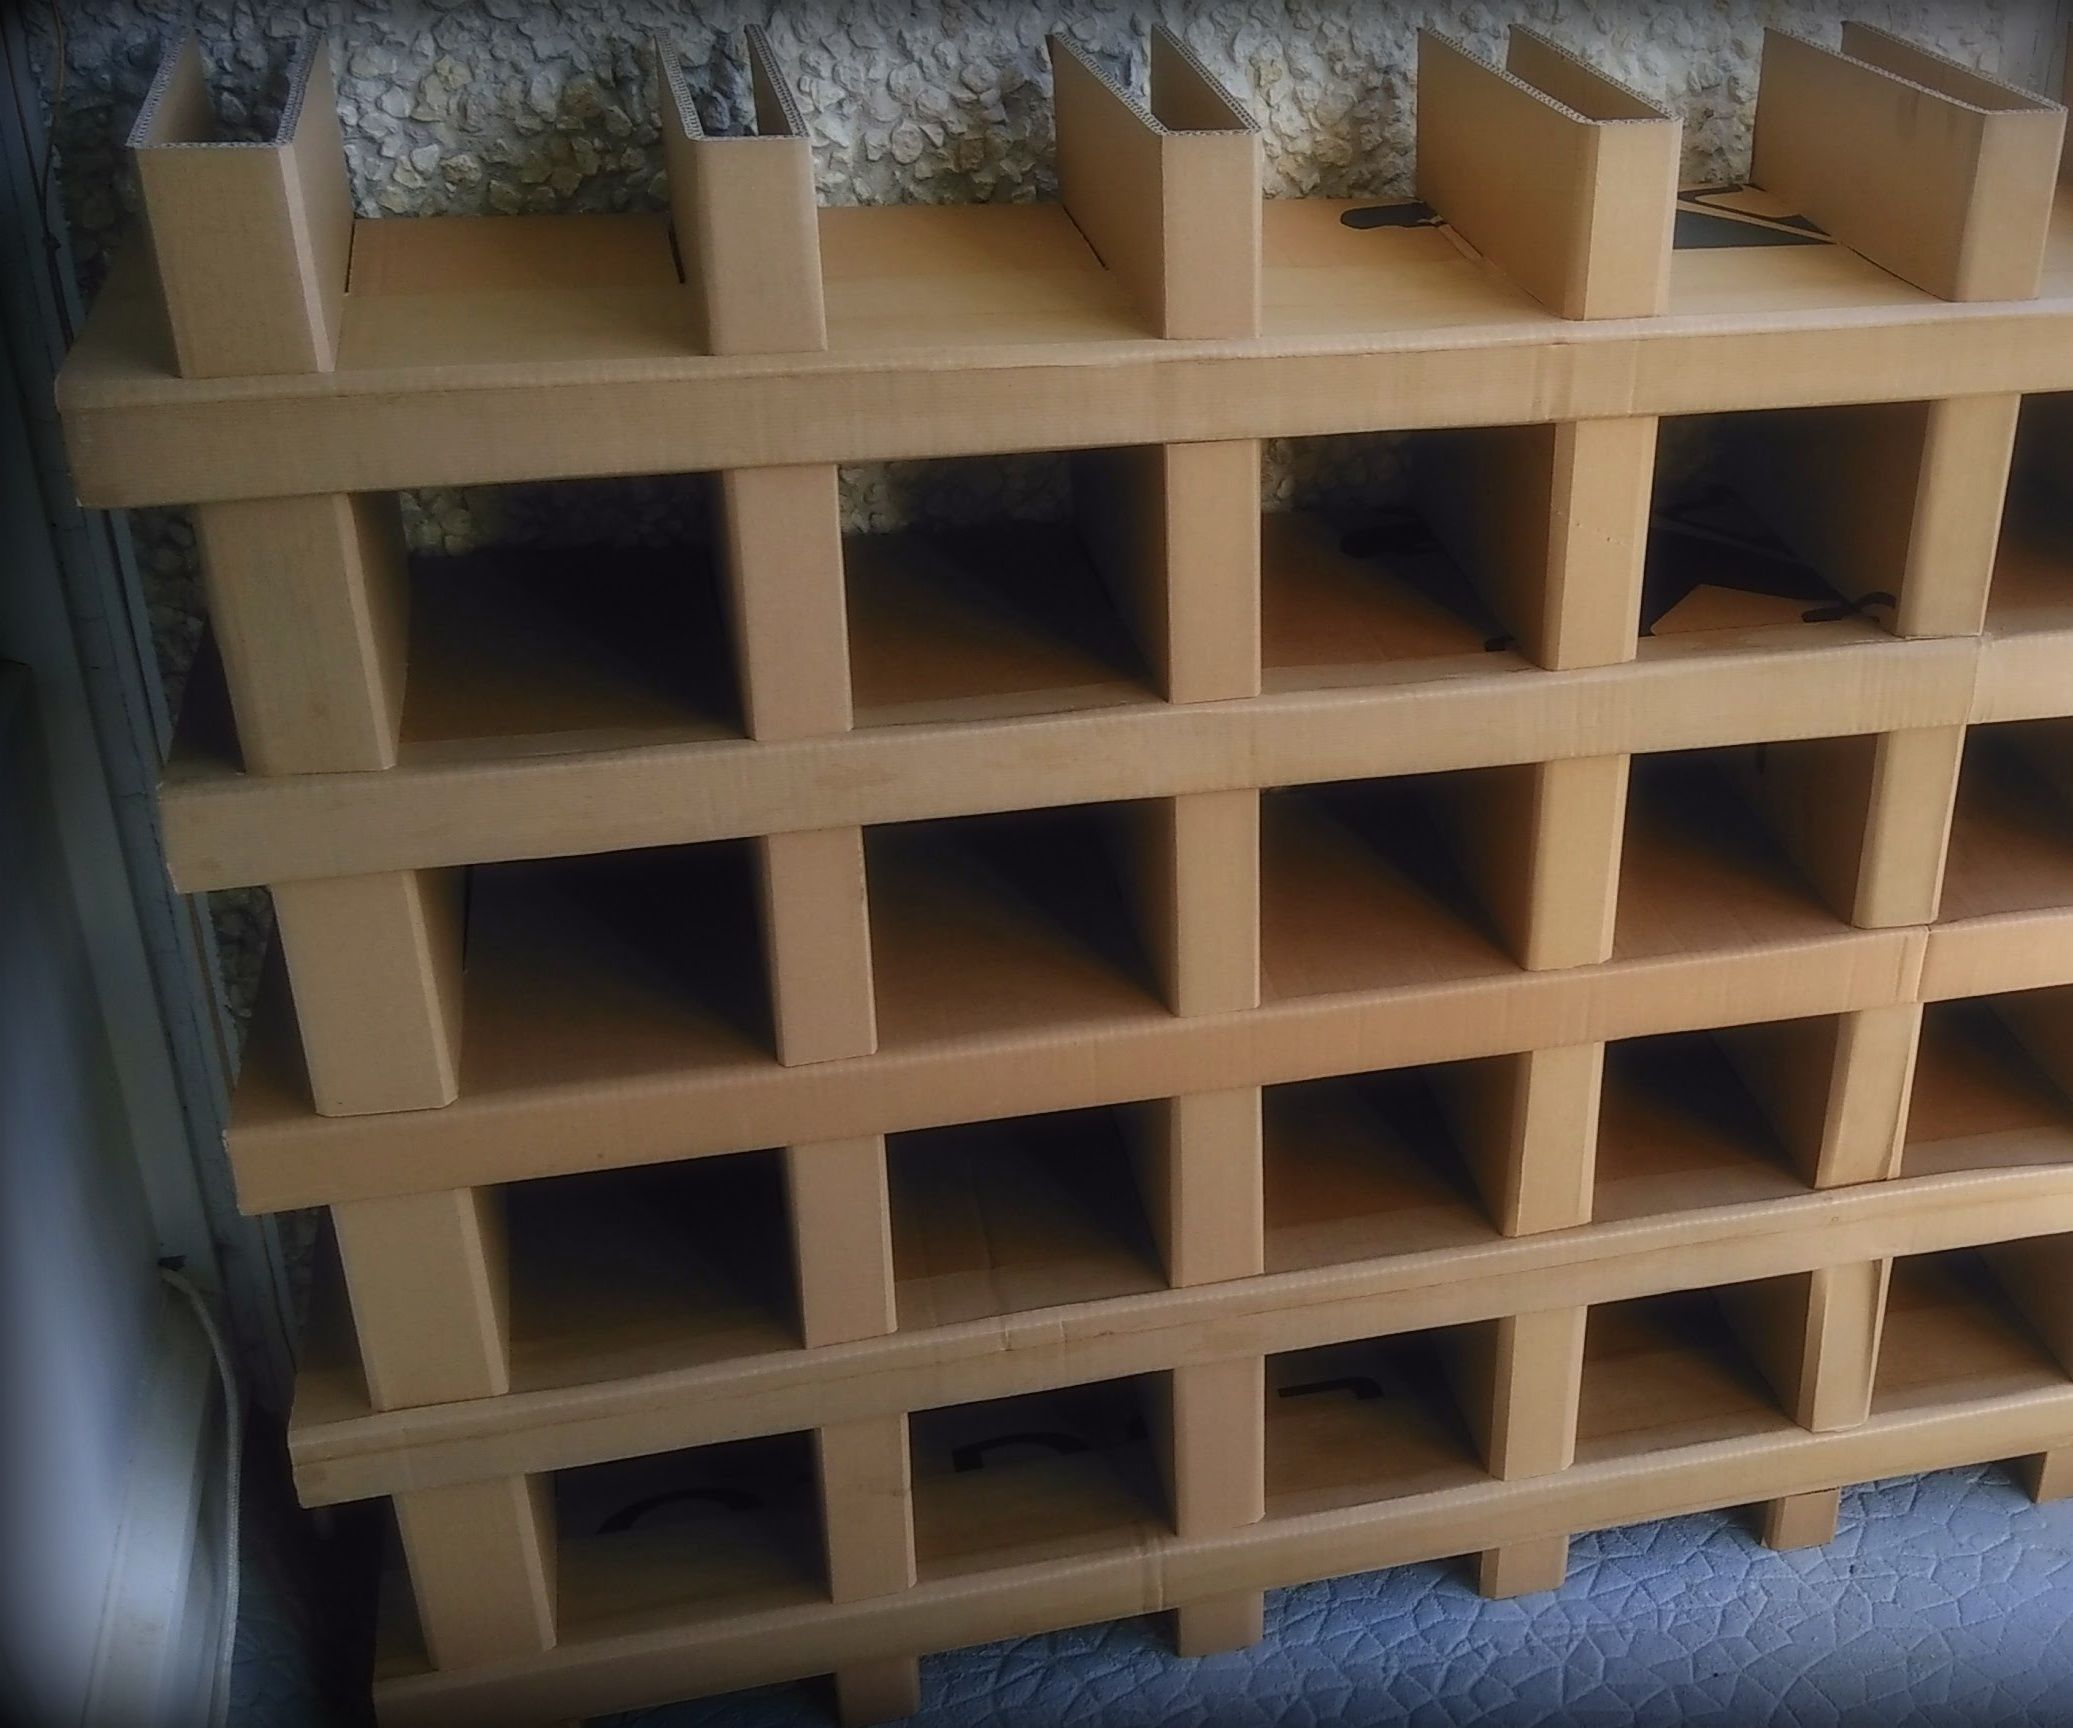 Carboard Shelving Without Screw Nor Glue...